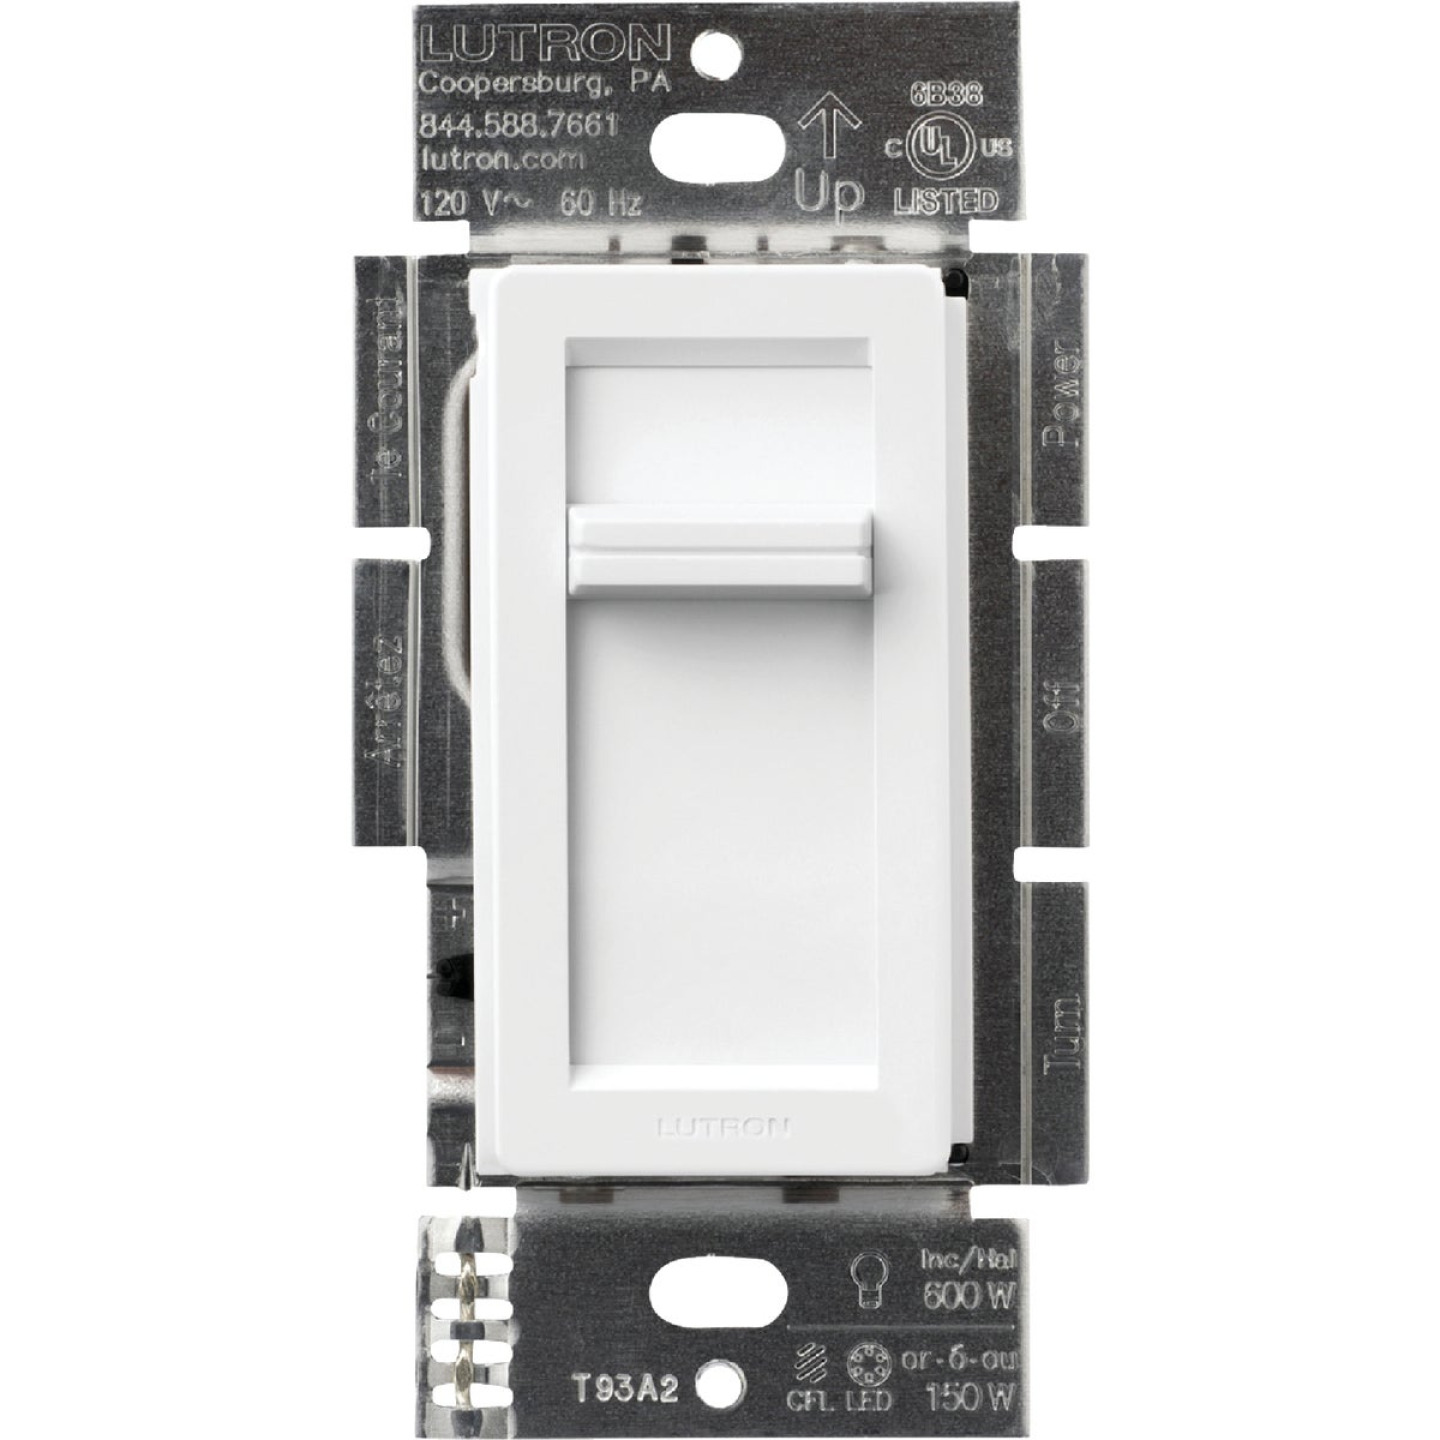 Lutron Lumea CL White 120 VAC Wireless Dimmer Image 3